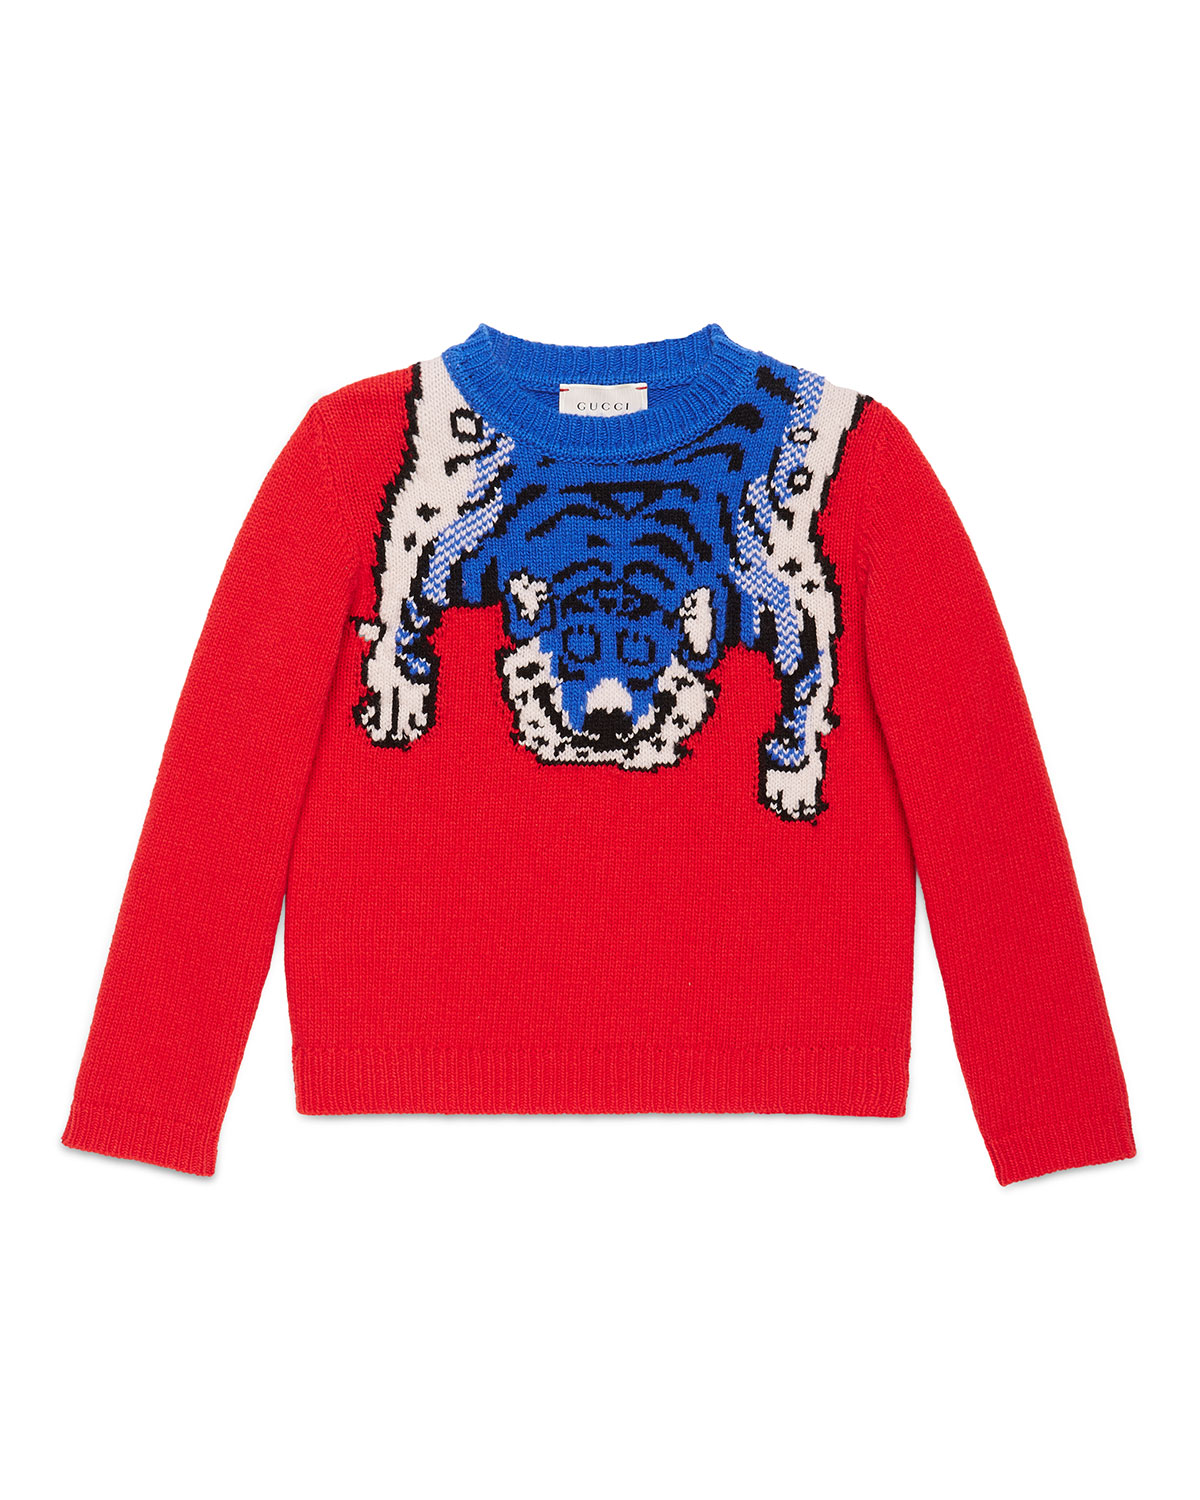 gucci wool tiger crewneck sweater red size 4 12 neiman marcus